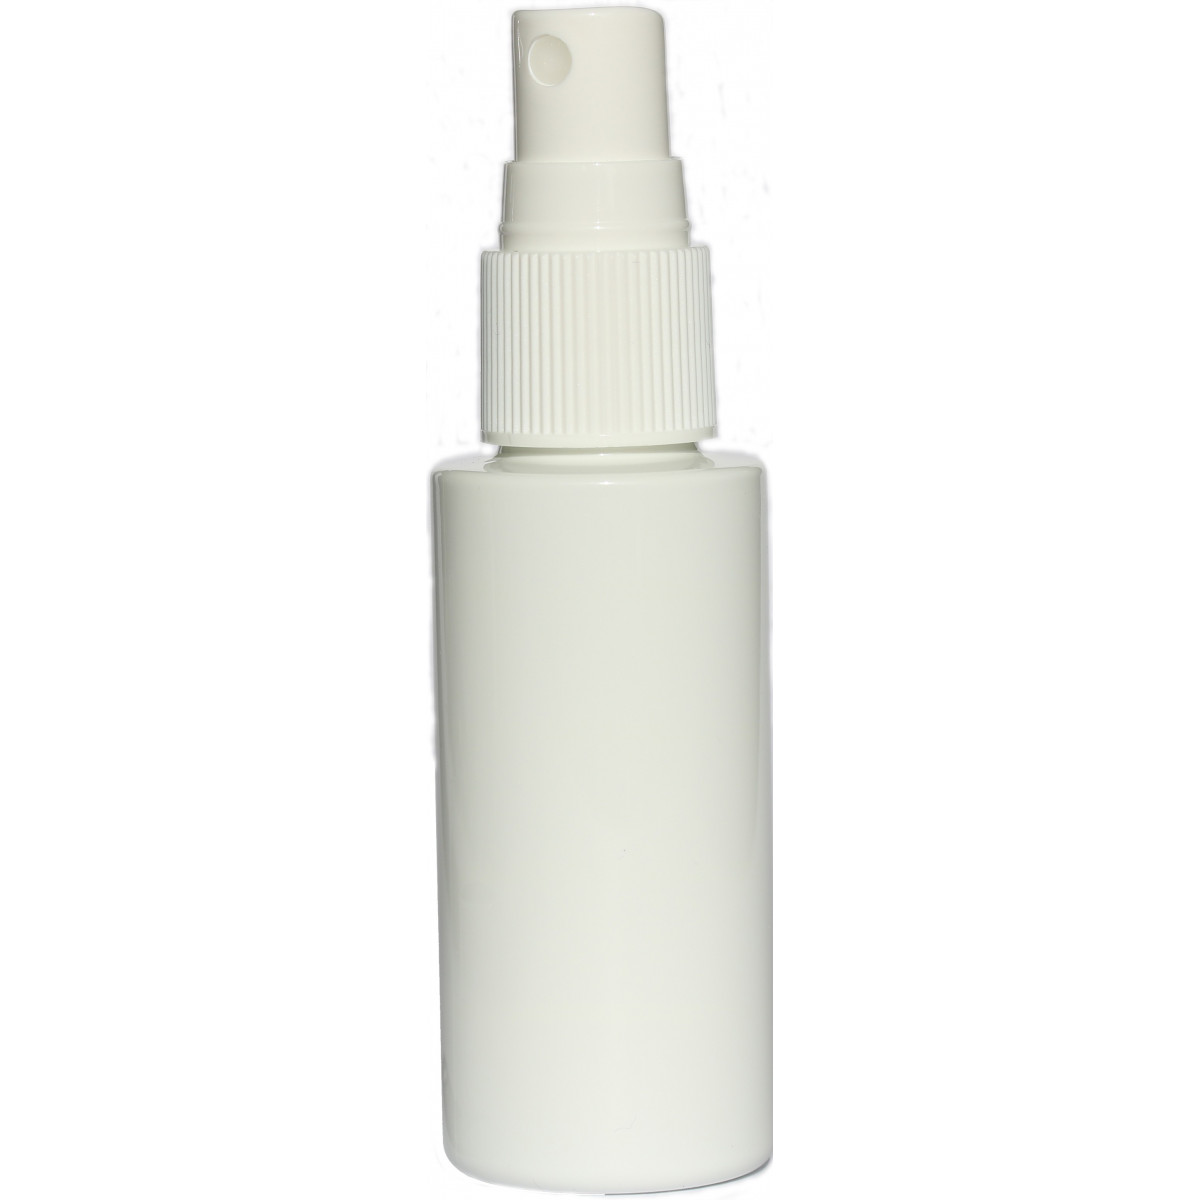 Flacon spray 50ml